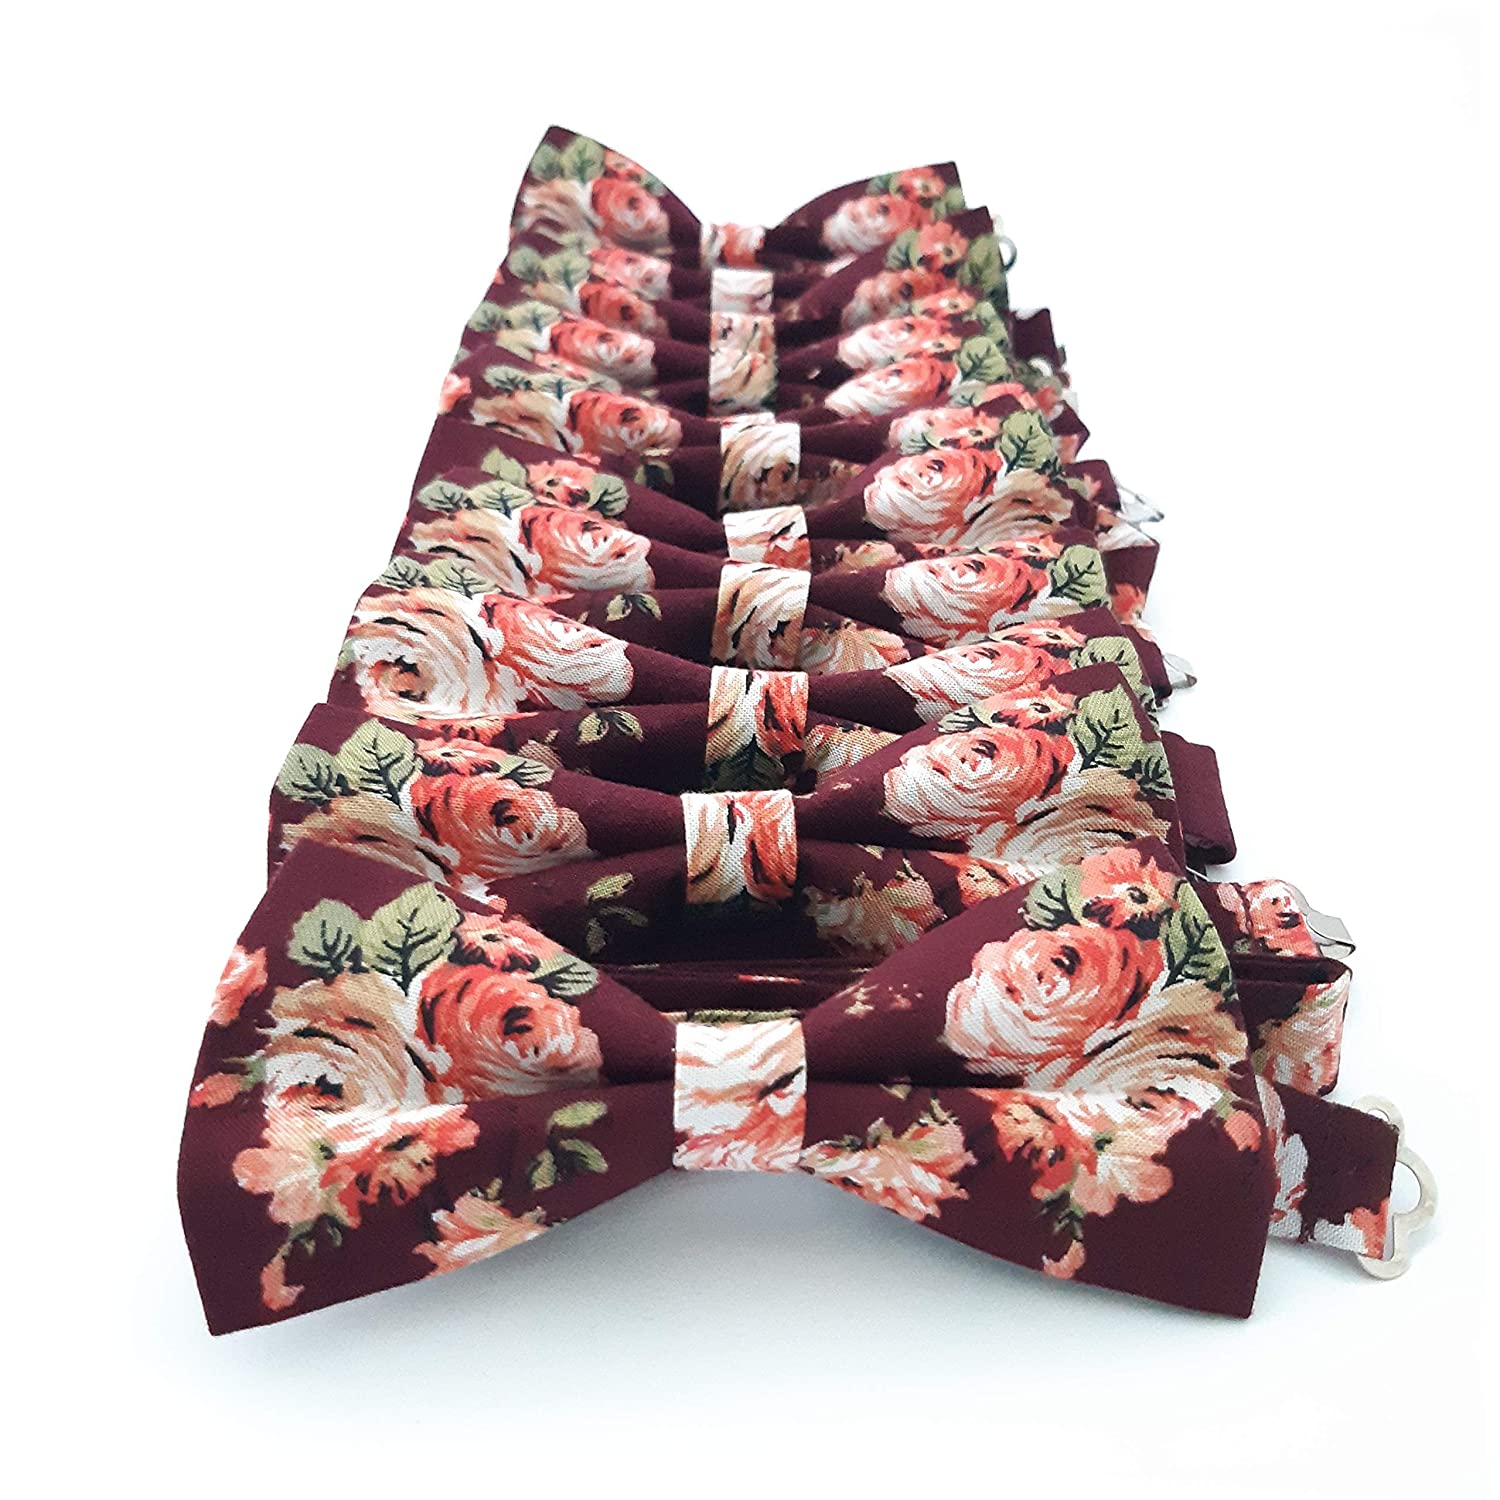 Accessories482 Burgundy Floral Men's Pre-tied Bow tie Groomsmen Outfits Groom Wedding Party Accessory